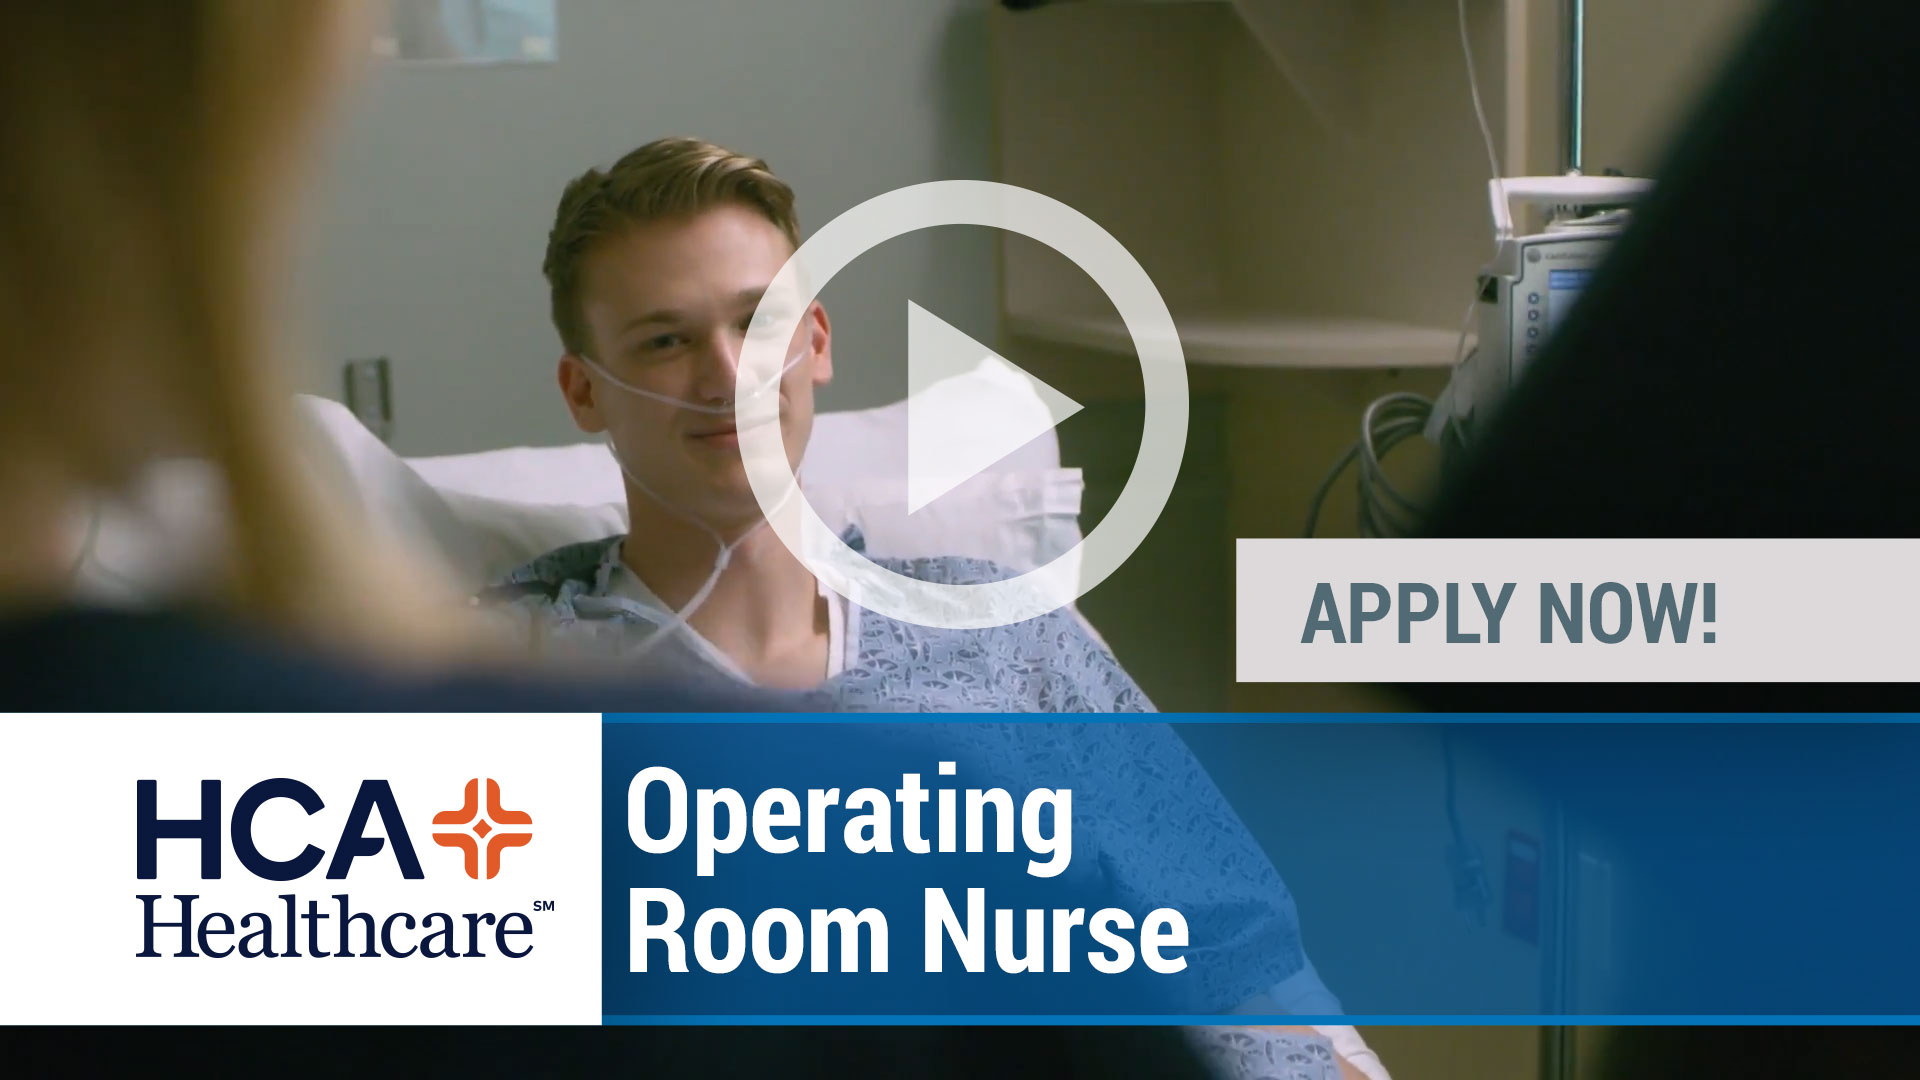 Watch our careers video for available job opening Operating Room Nurse in Augusta, Georgia